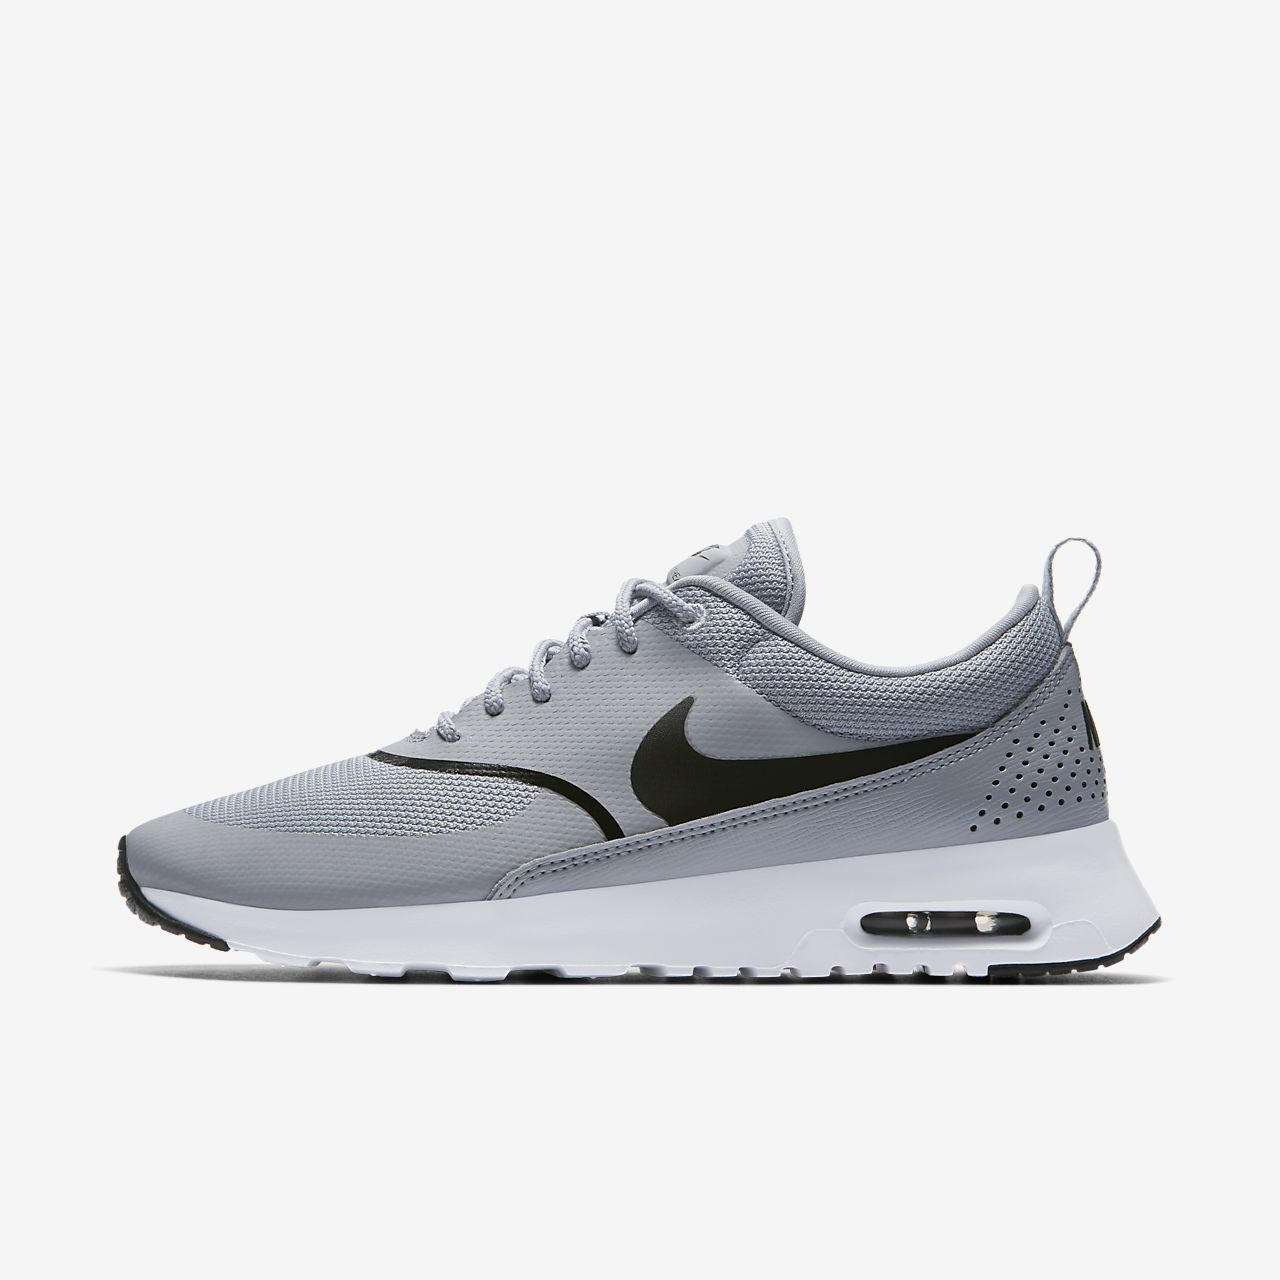 reputable site 1be4a a6f25 ... Nike Air Max Thea Women s Shoe